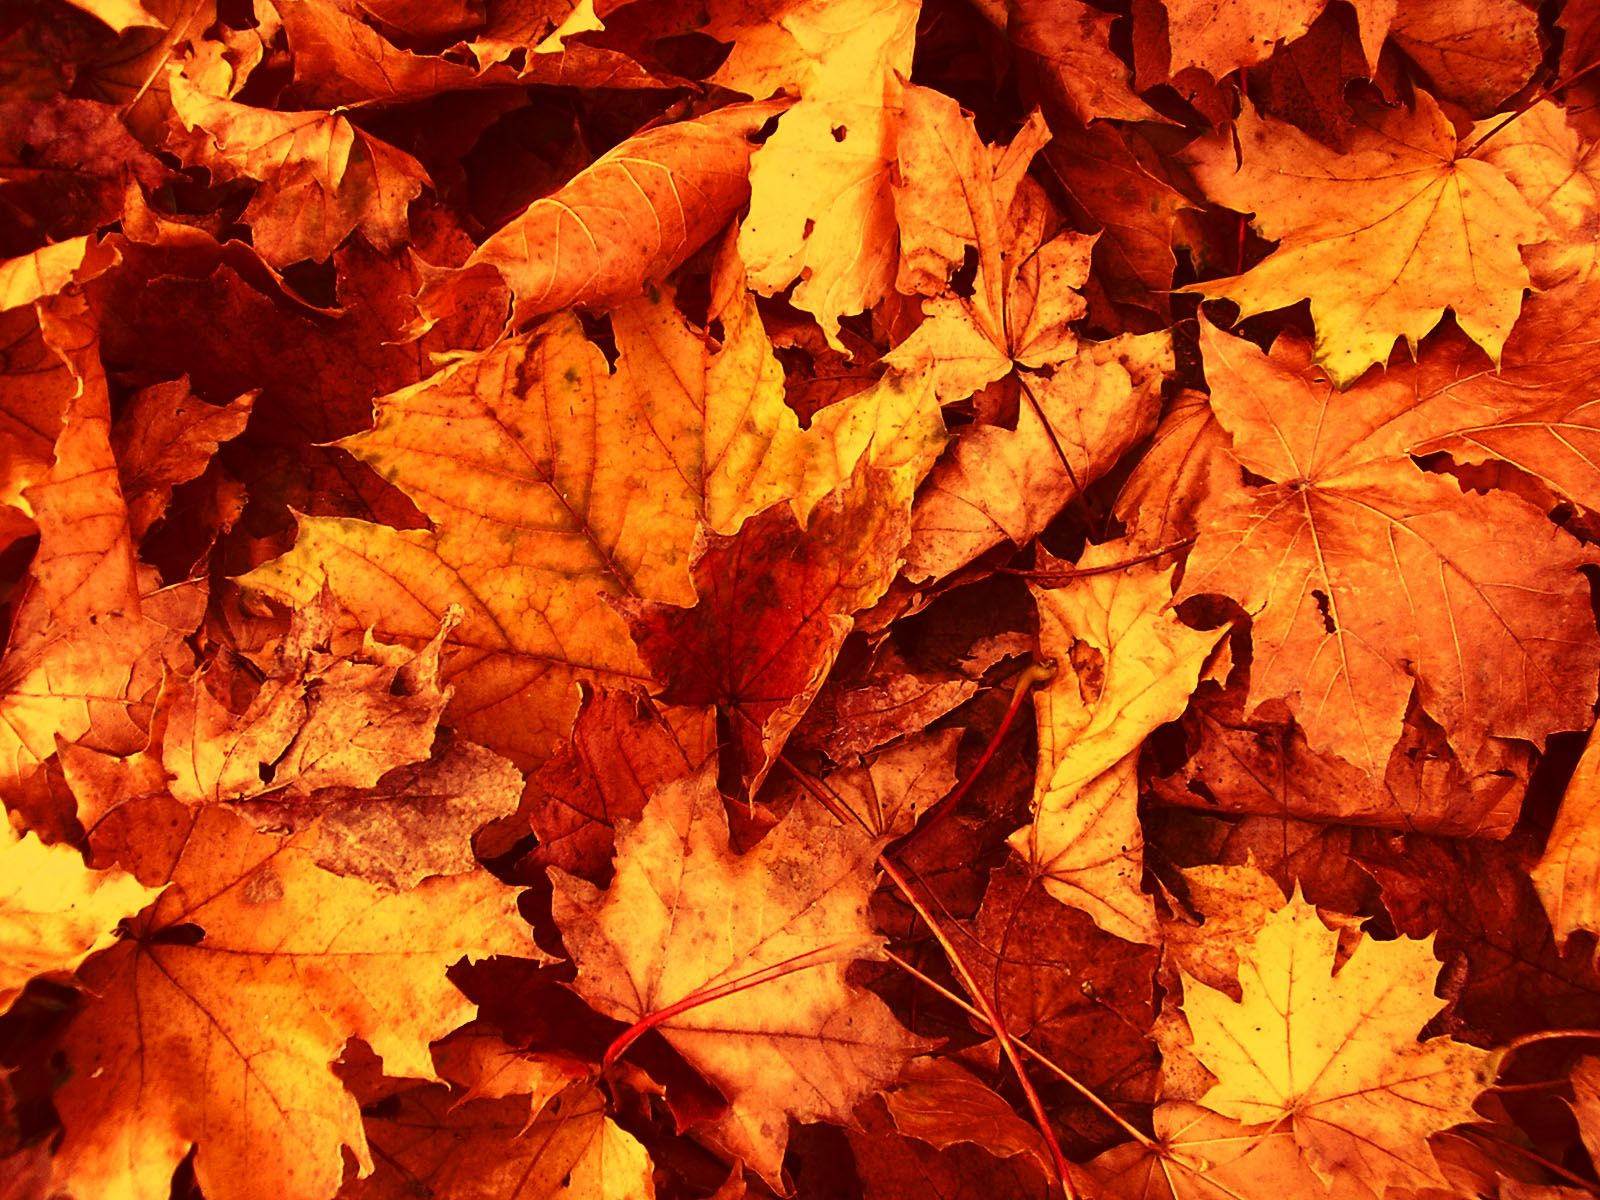 Fall Leaves Wallpapers High Definition Autumn Leaves Wallpaper Fall Leaves Background Fall Wallpaper